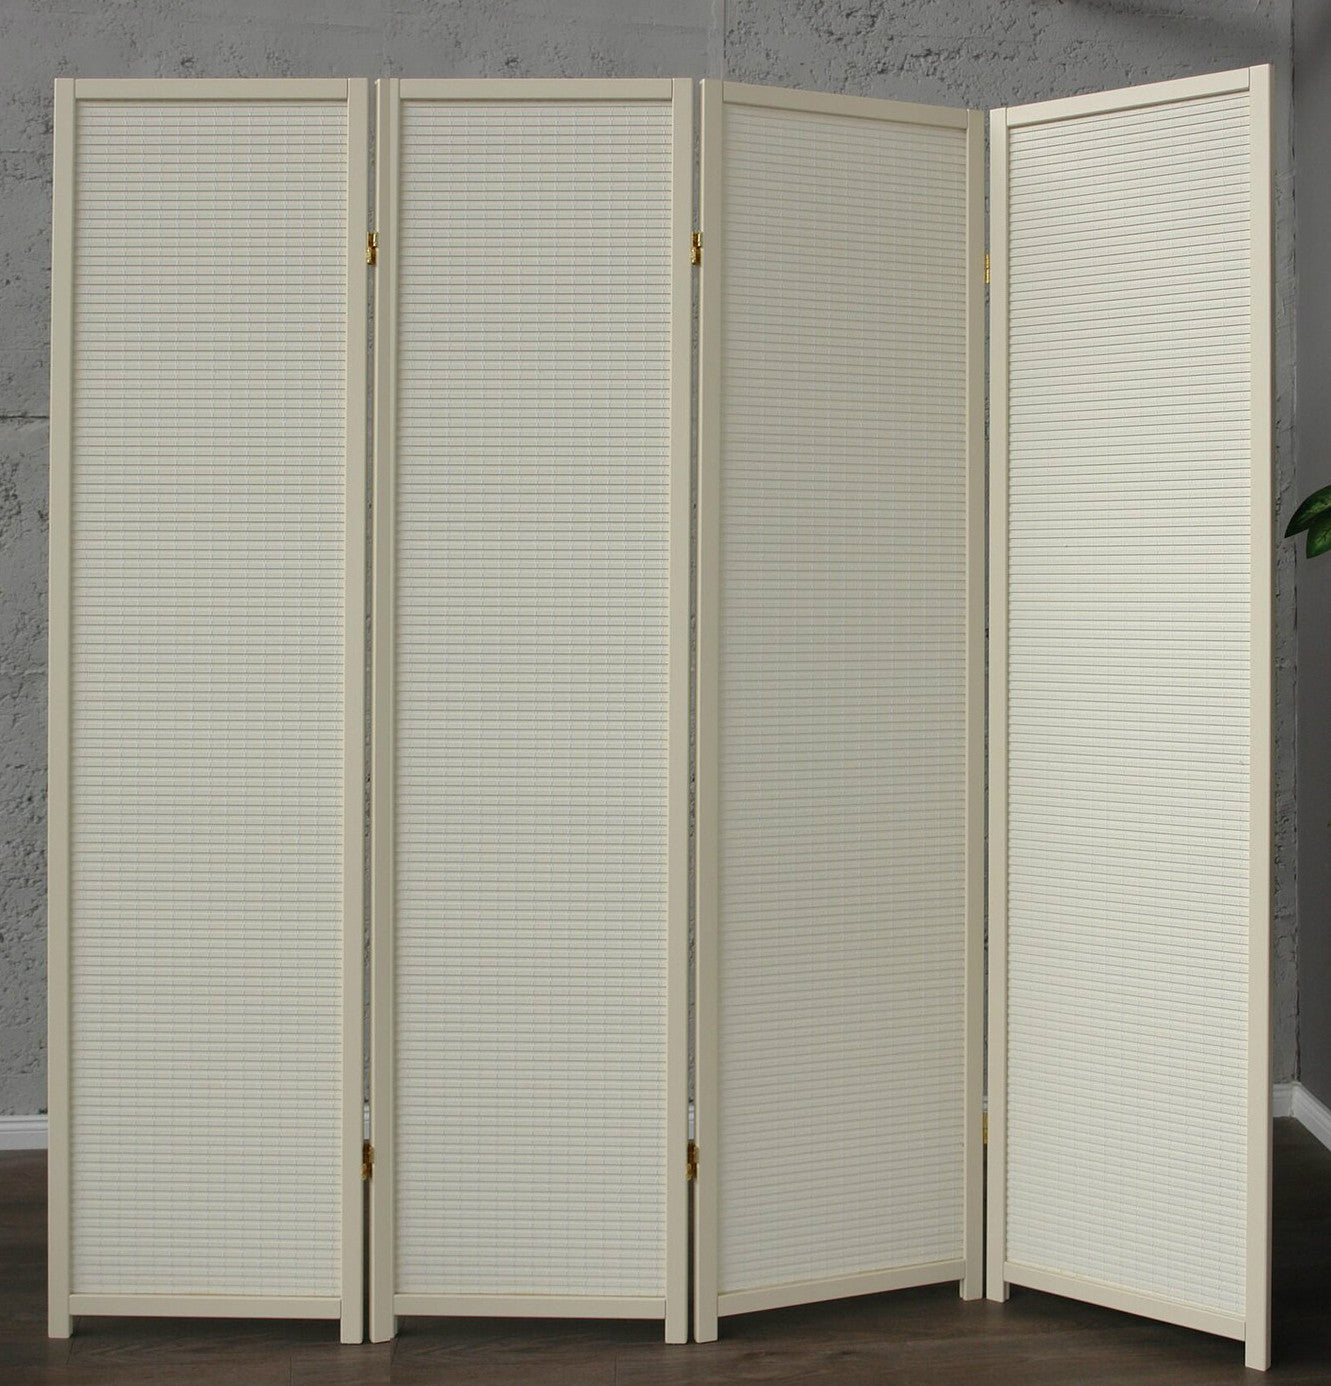 Cremo Wood Room Divider - 4 Panel